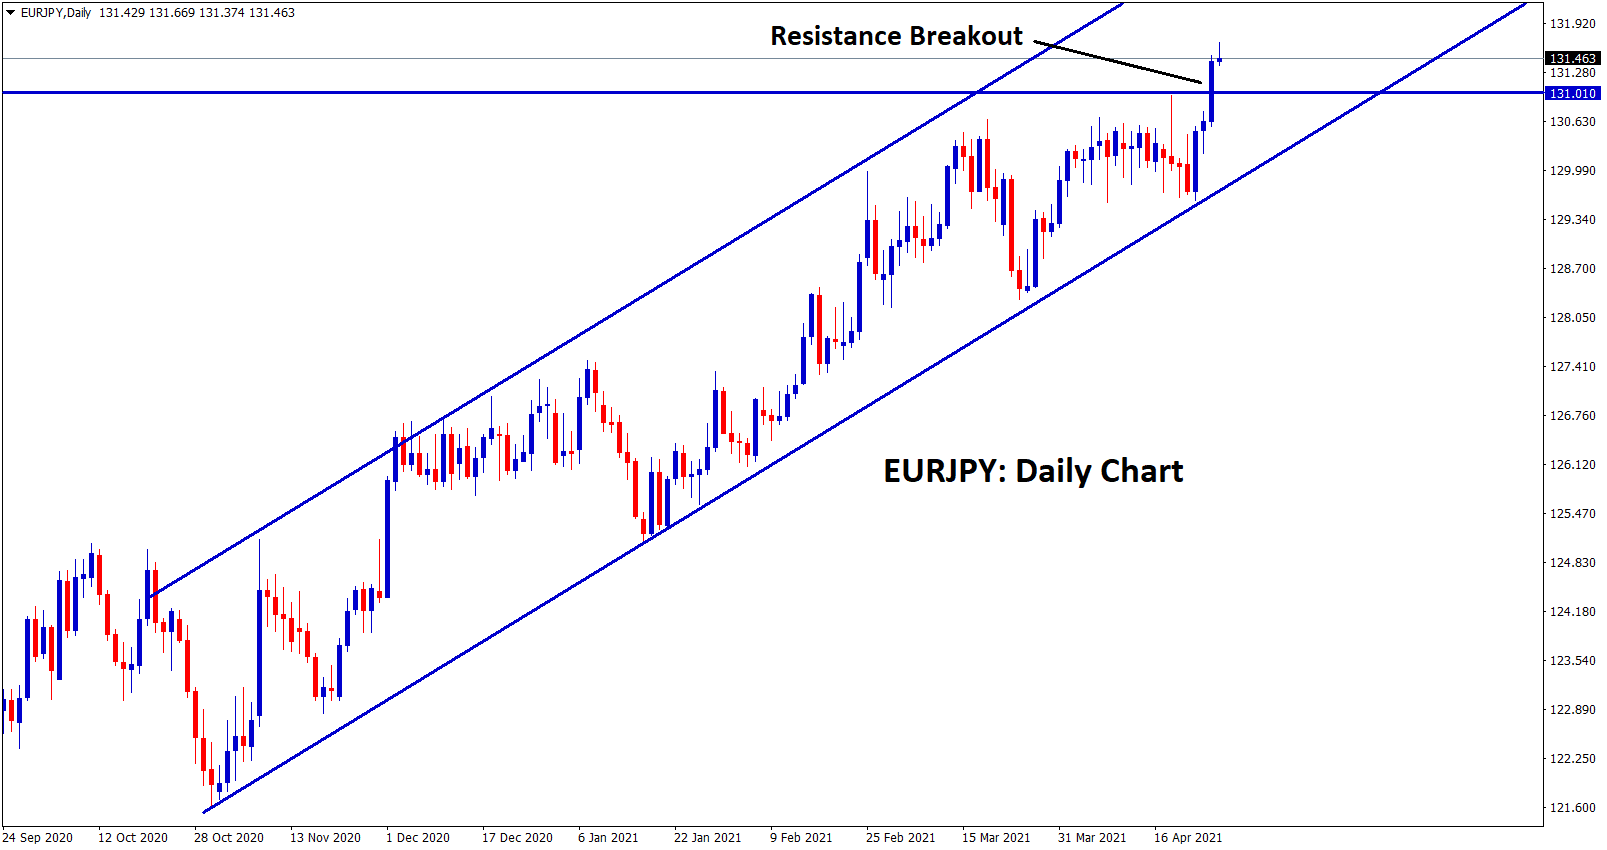 EURJPY resistance breakout in the daily chart